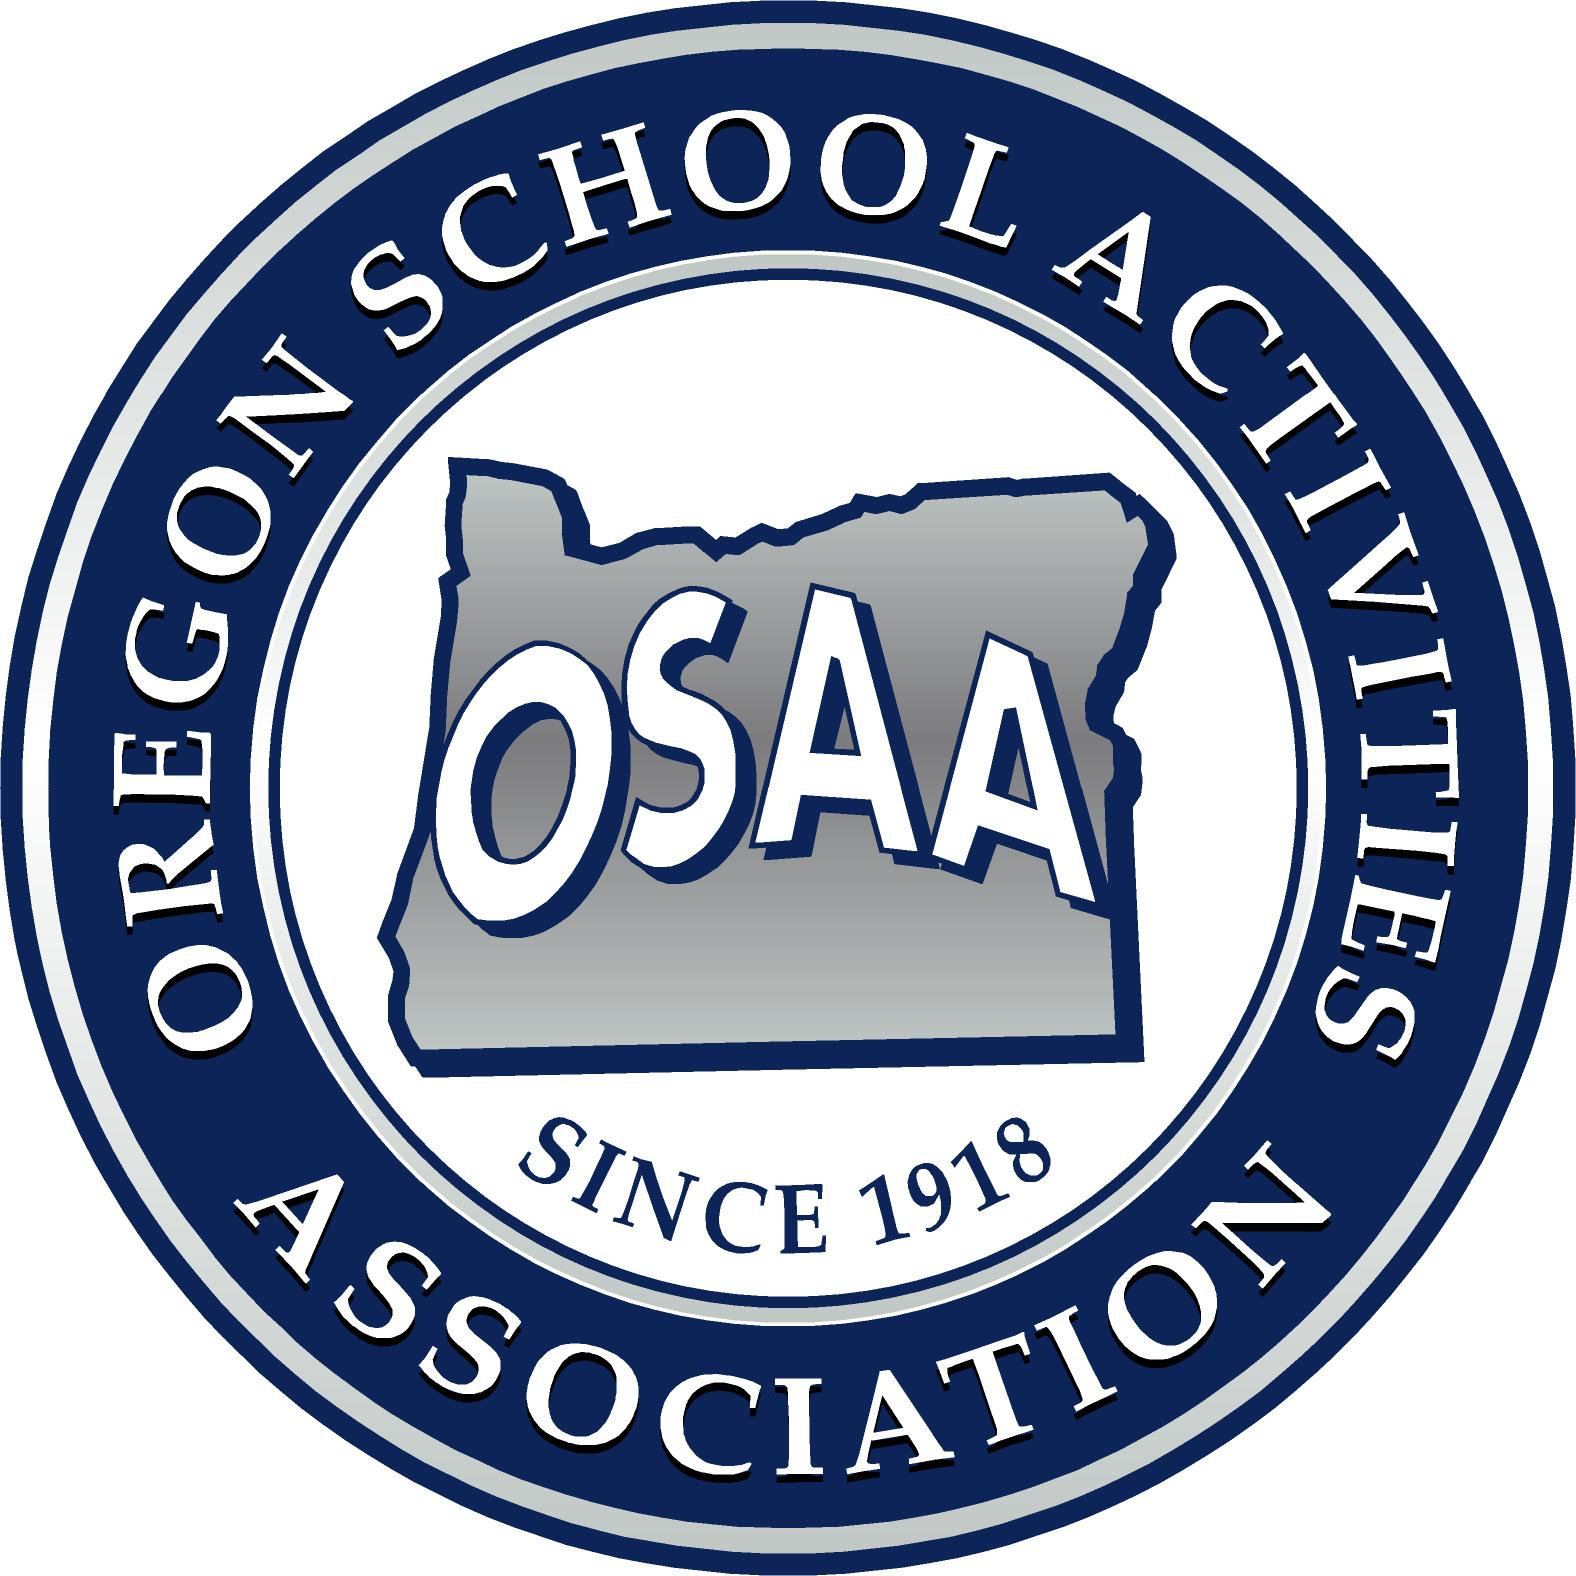 Cascade Christian Takes 3rd in OSAA Cup, Top Local Finisher